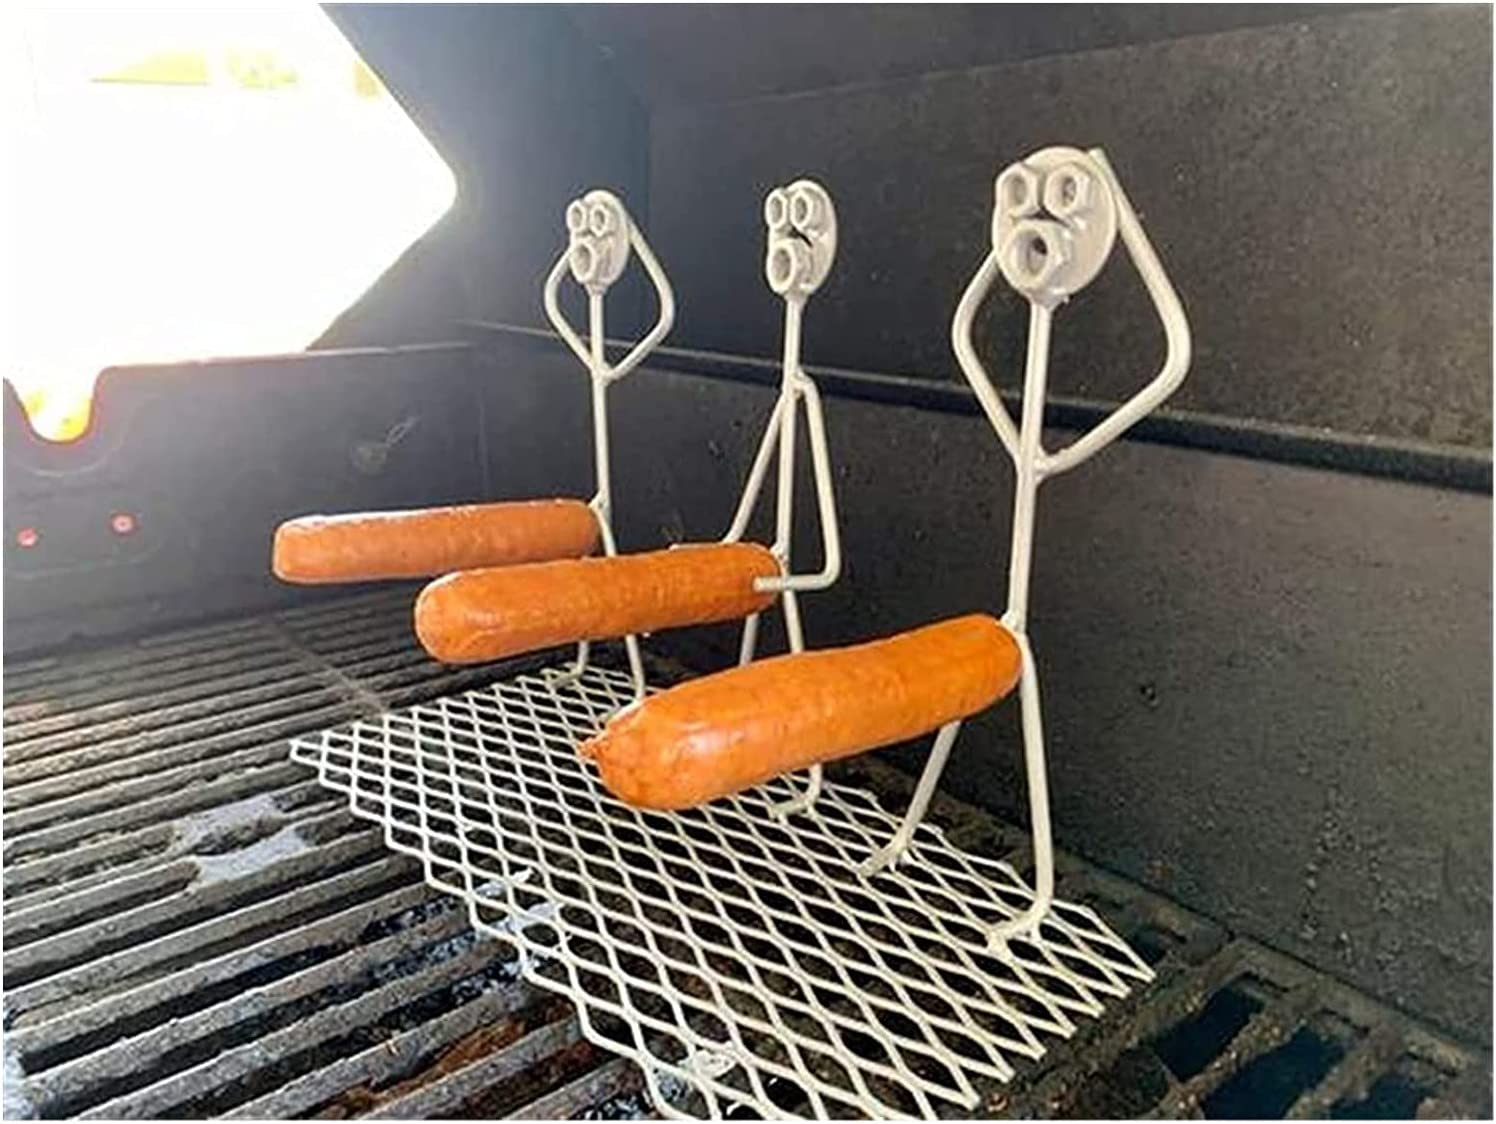 Steel Hot Dog/Marshmallow Roaster Stainless Steel Novelty Women Men Shaped Camp Fire Roasting Stick Funny Metal Barbecue Forks for Campfire and Grill Craft Skewer (3 Hot Dog Guys)